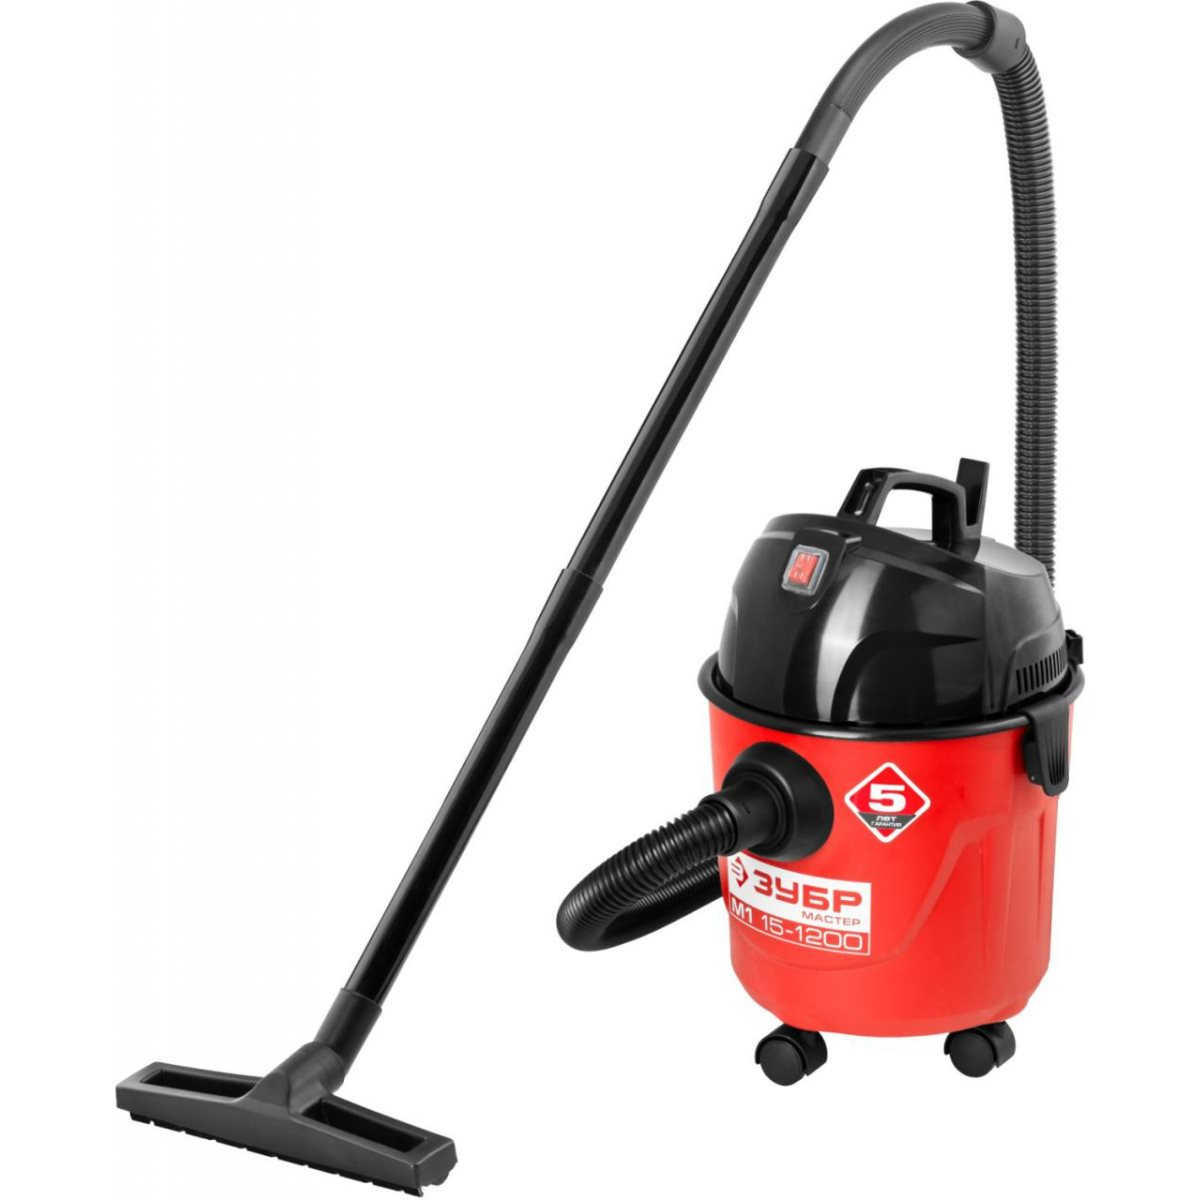 Vacuum cleaner for dry and wet cleaning BISON PU-15-1200 M1